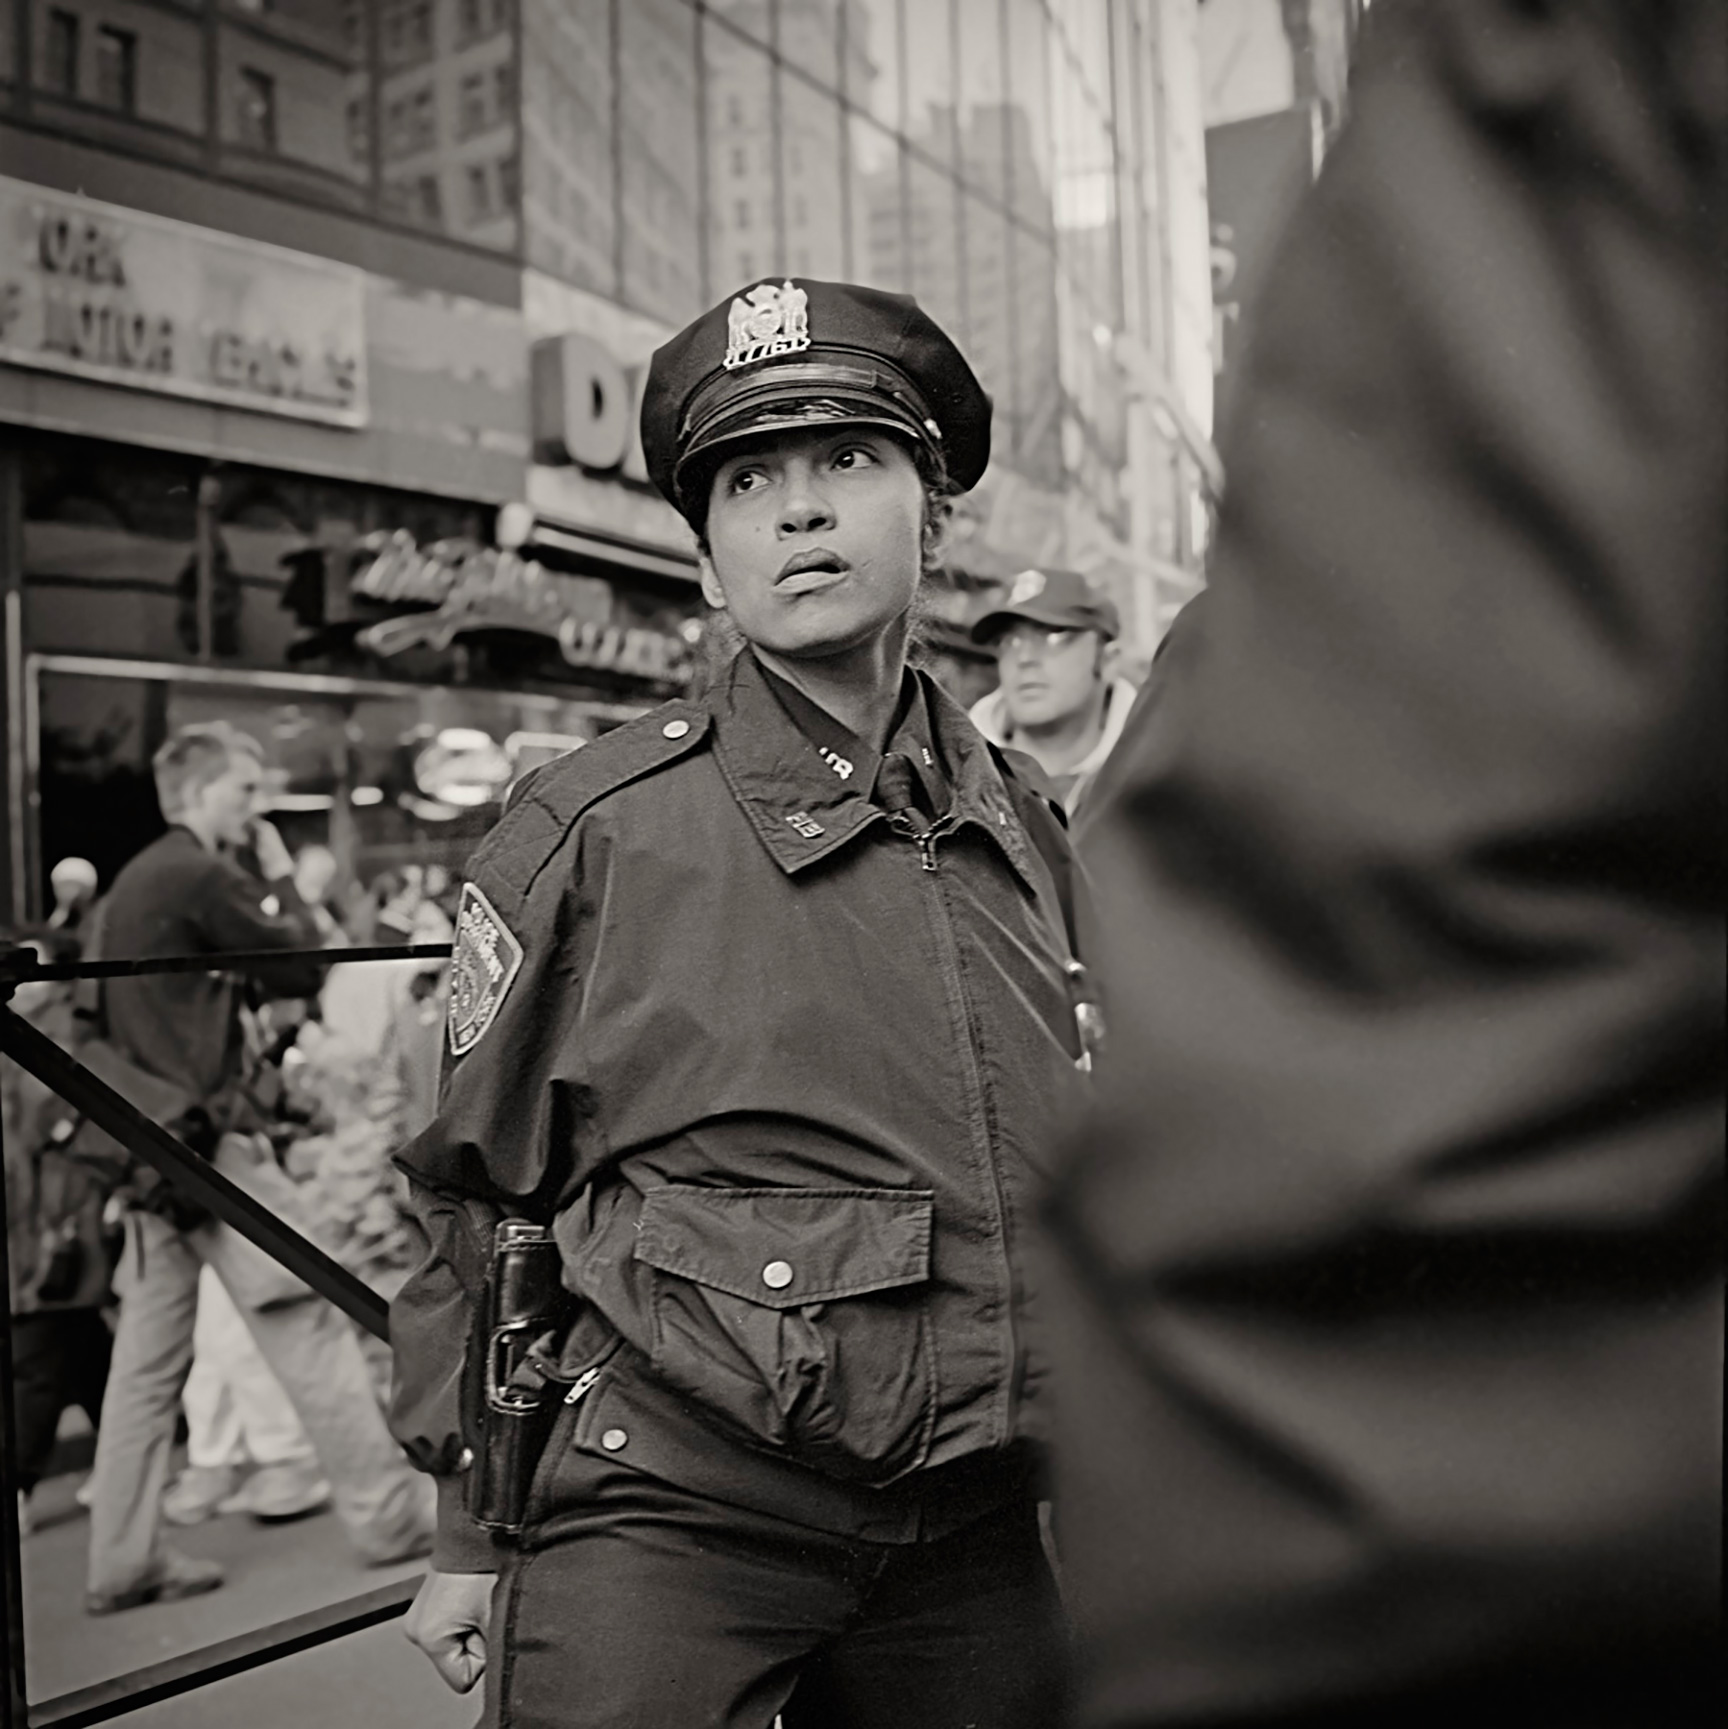 policewoman-at-protest-march.jpg